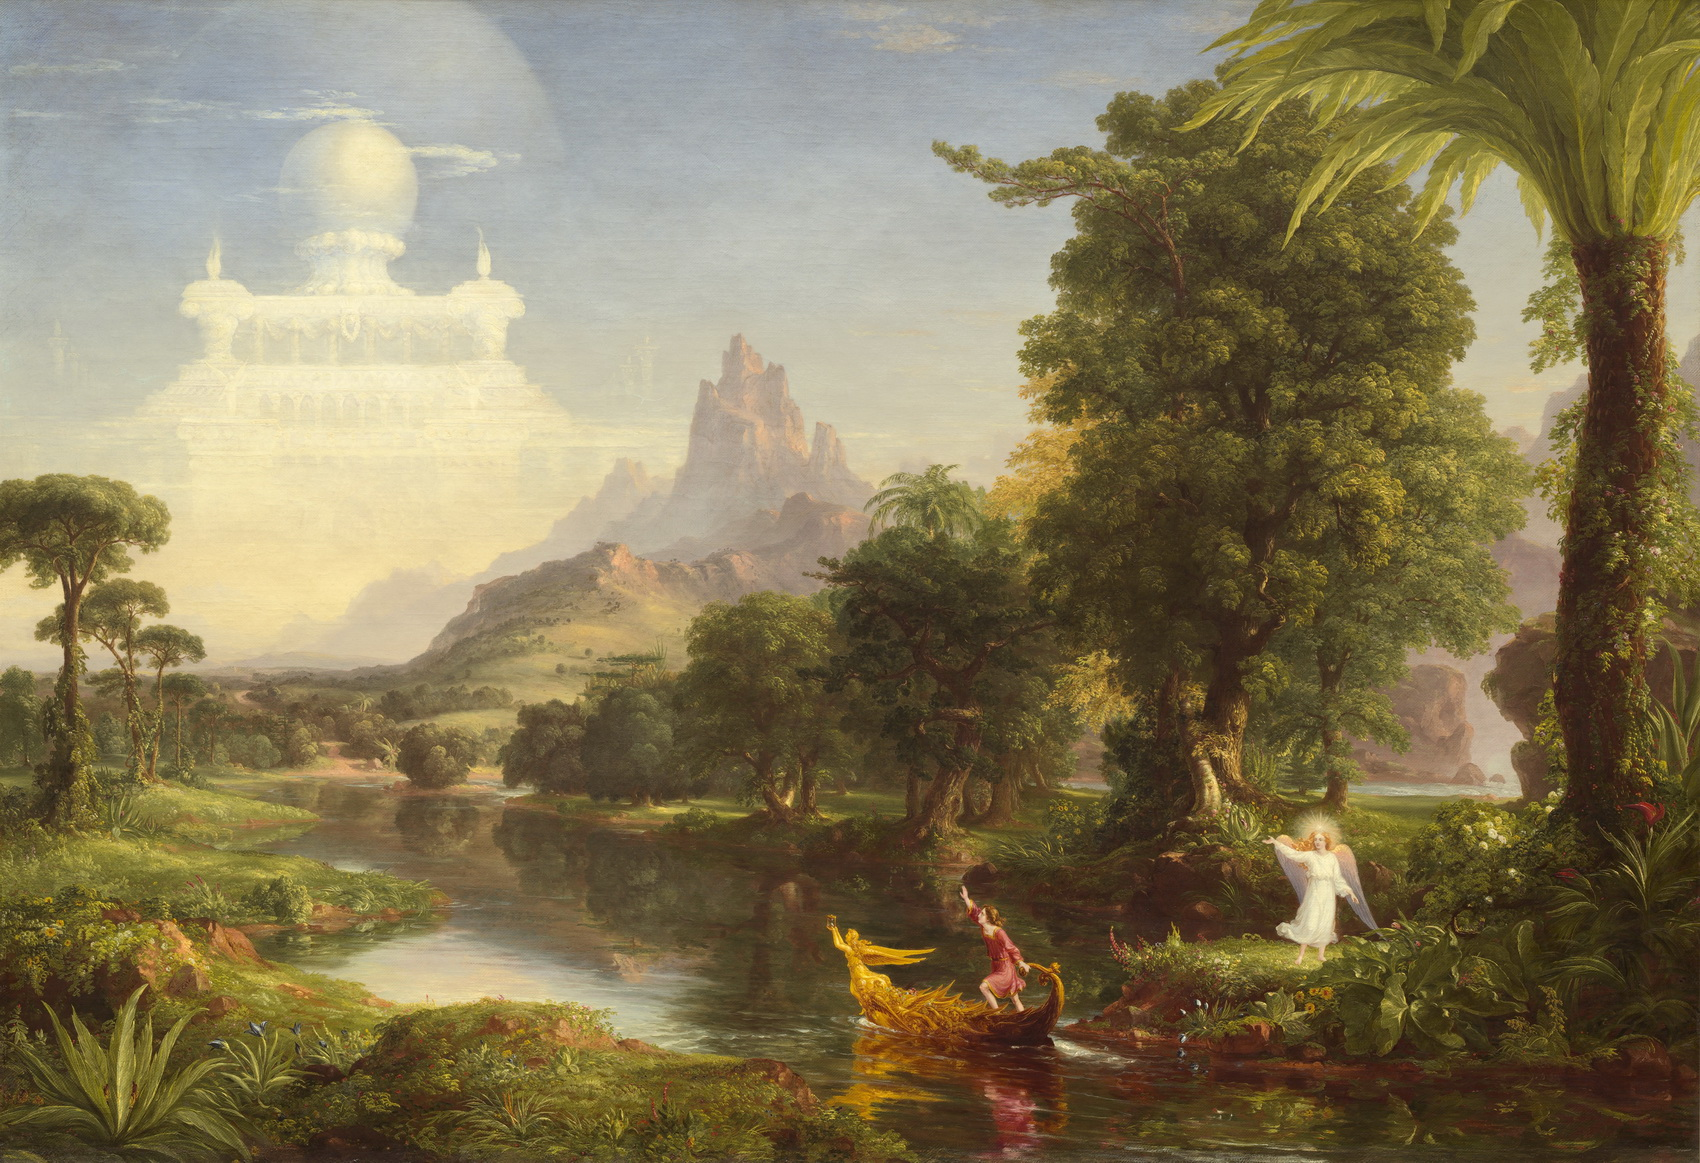 Thomas Cole - The Ages of Life - Youth - WGA05140-1700